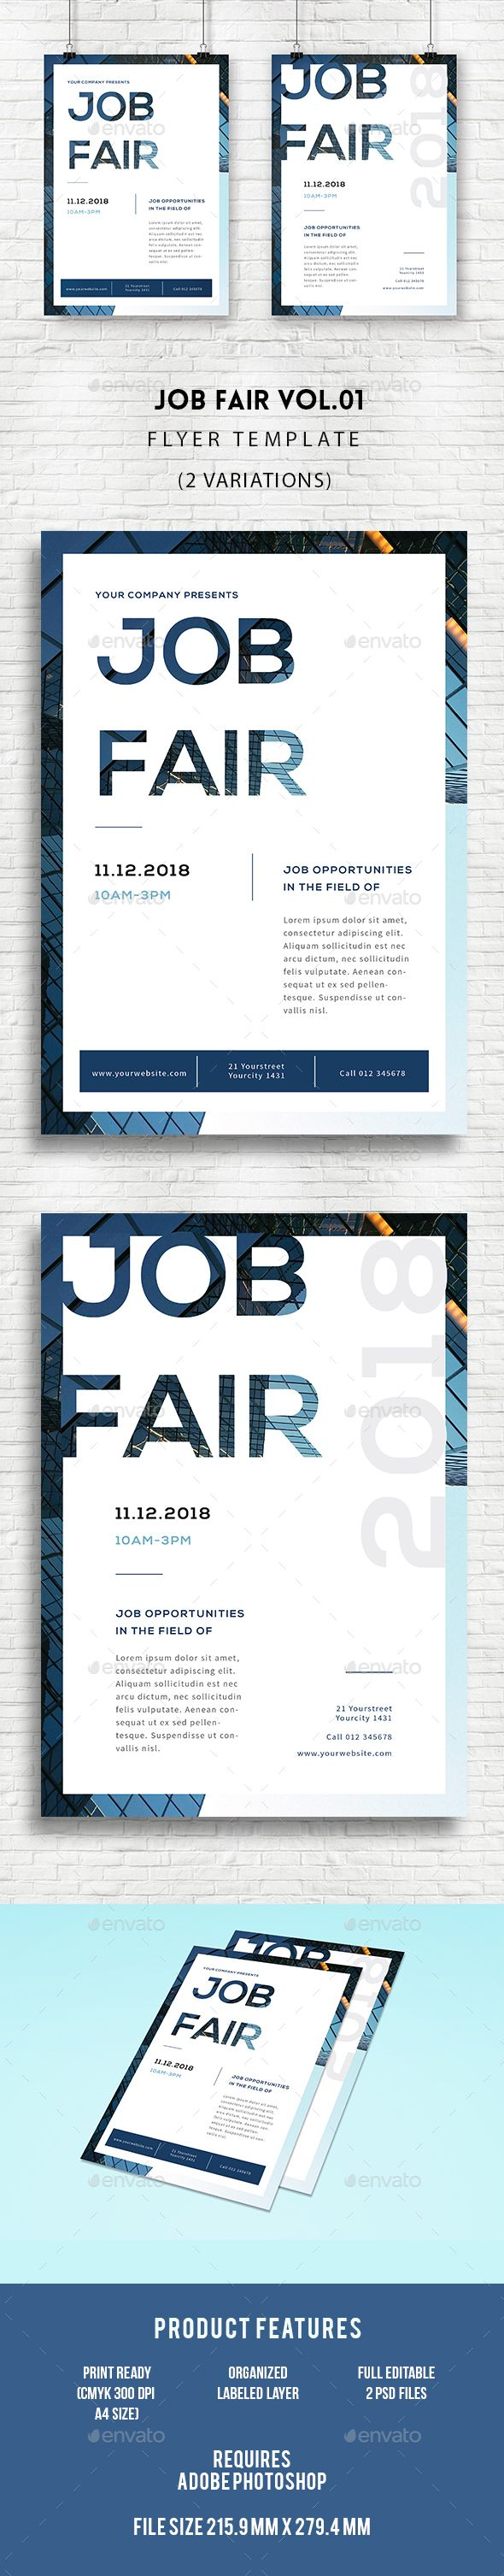 ideas about flyer template flyer design job fair flyer